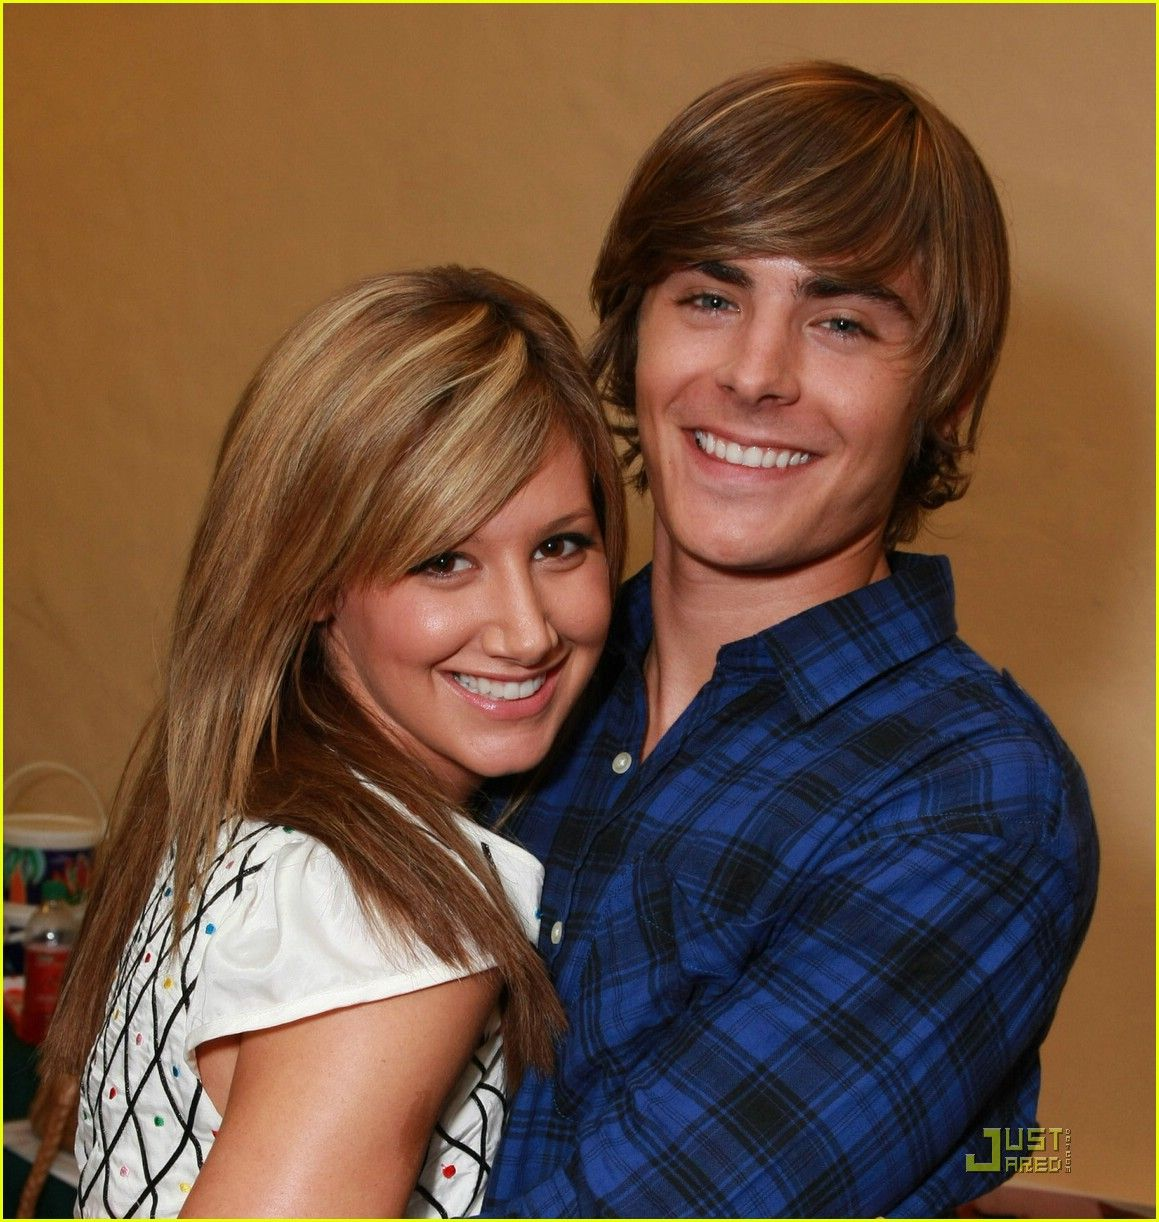 ashley tisdale and zac efron dating Watch music videos by ashley tisdale & zac efron and view related artists to ashley tisdale & zac efron.